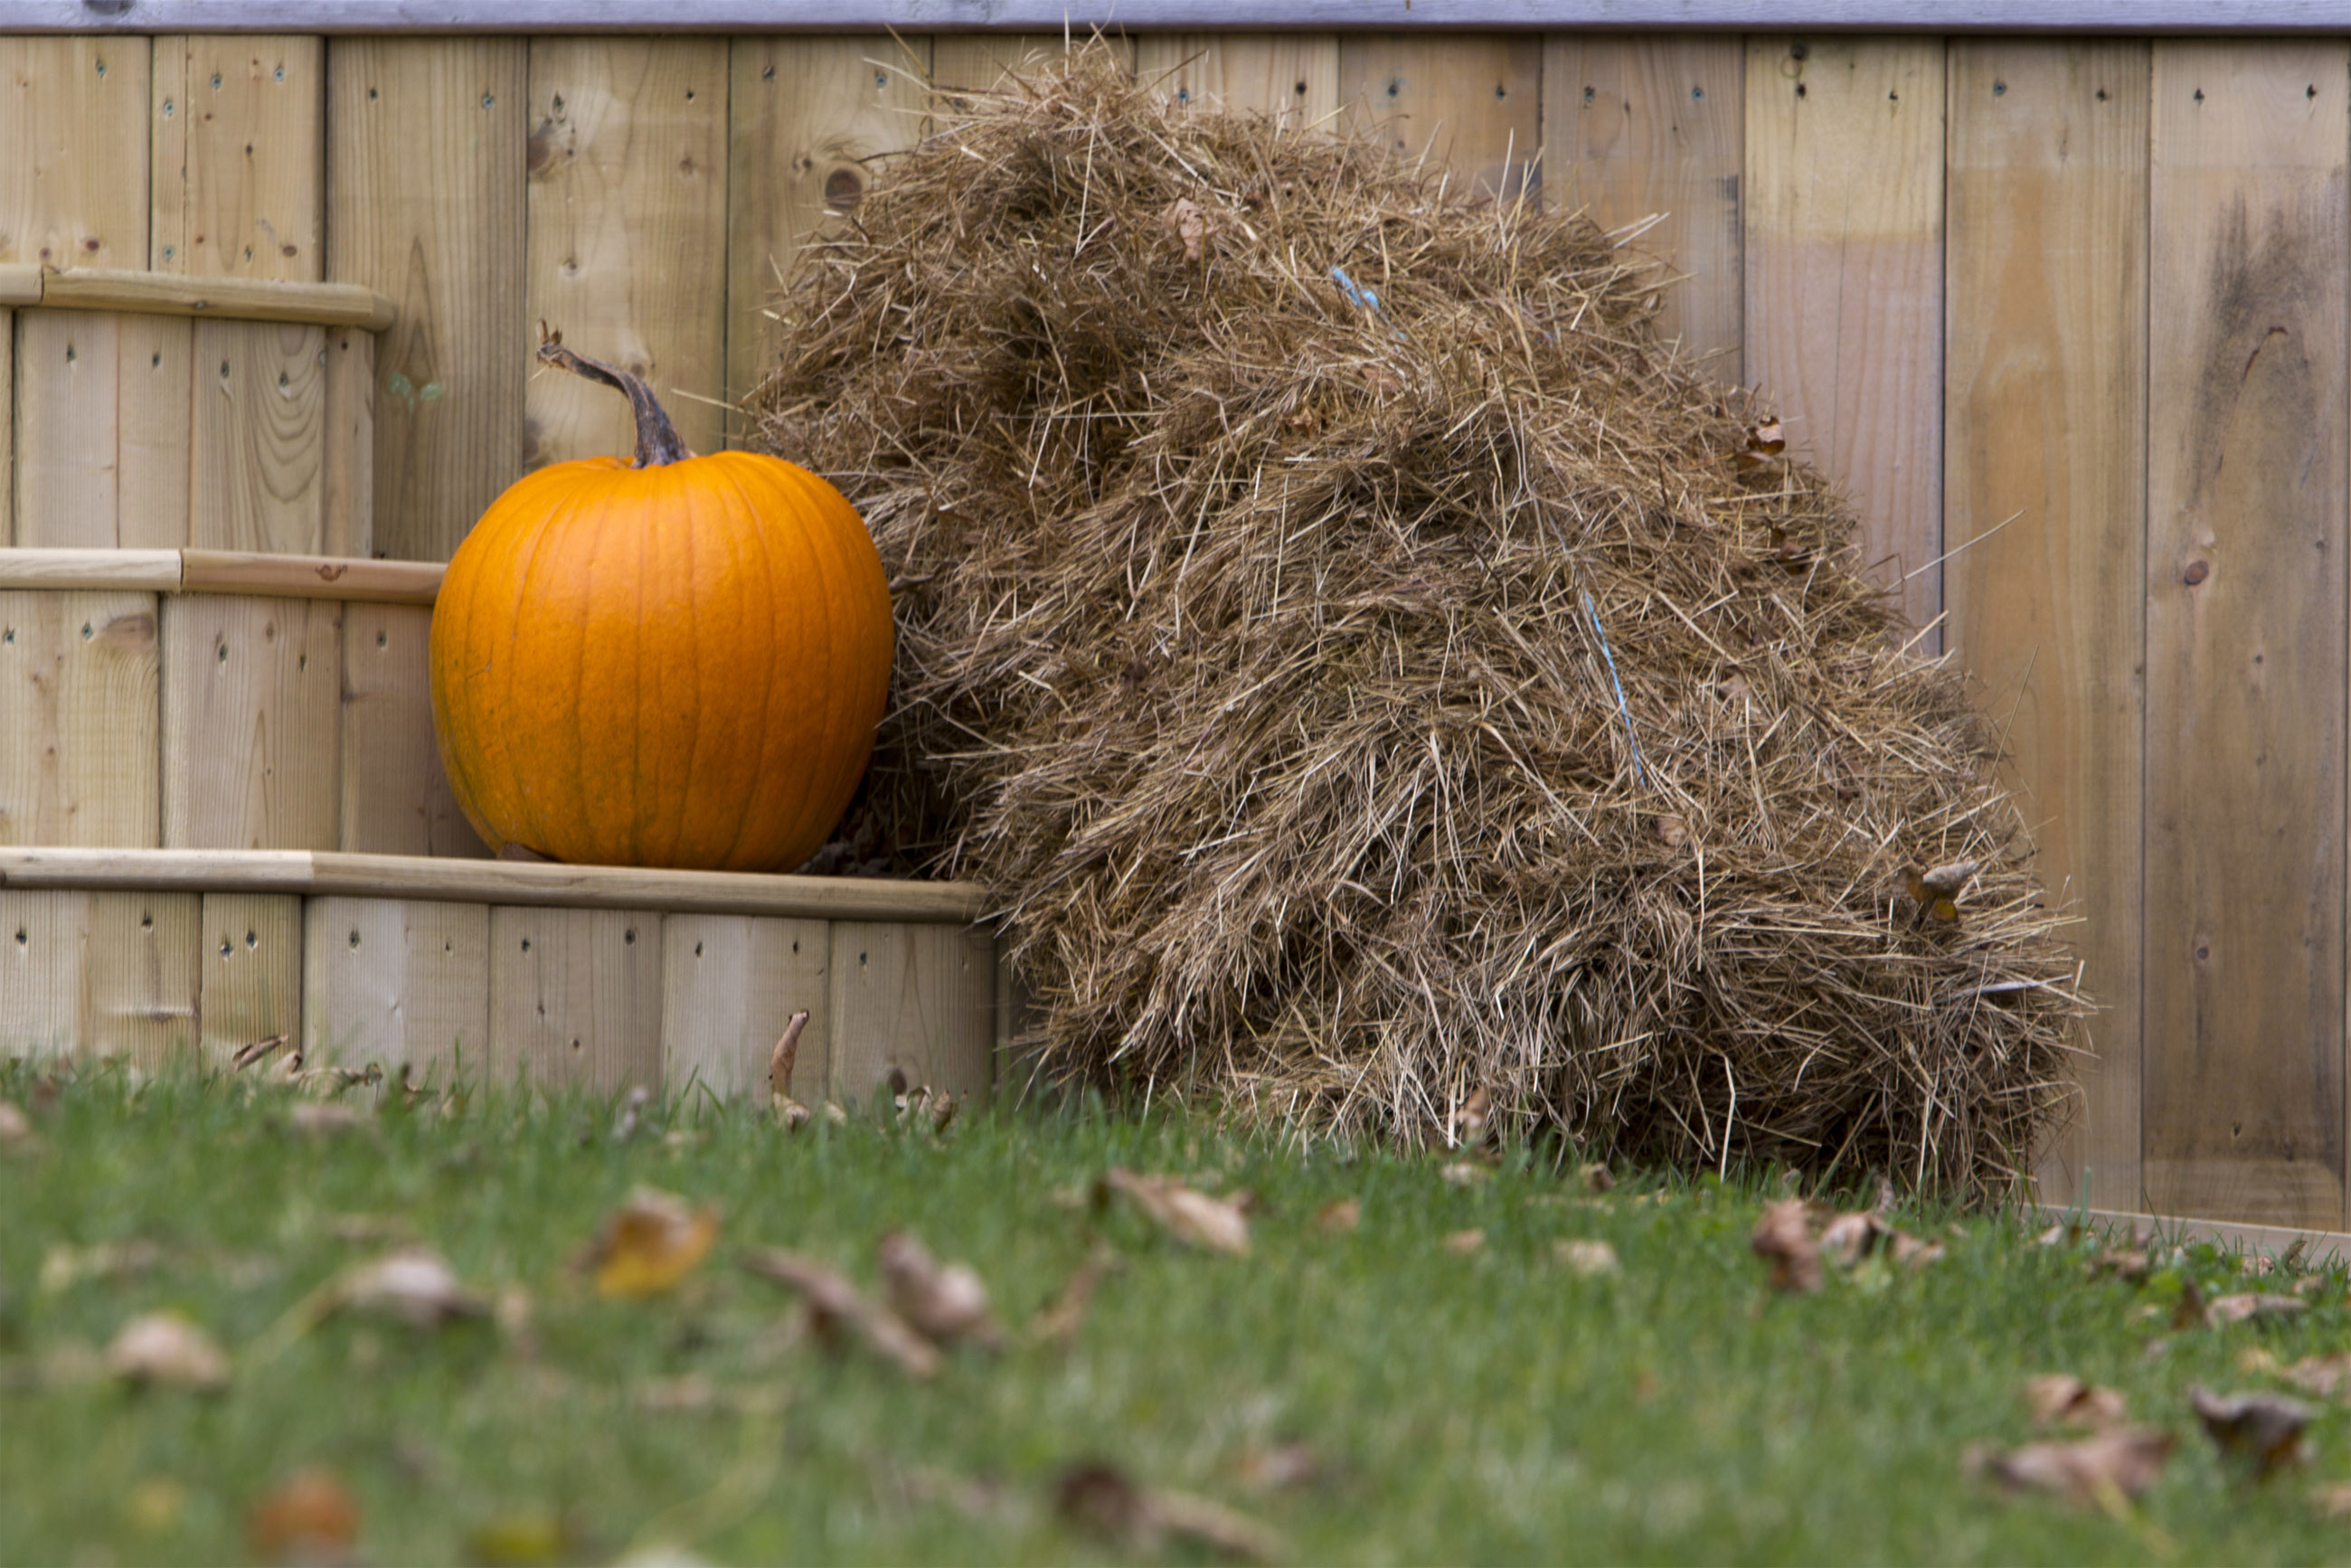 Pumpkin and Hay, Autumn, Decoration, Entrance, Front, HQ Photo